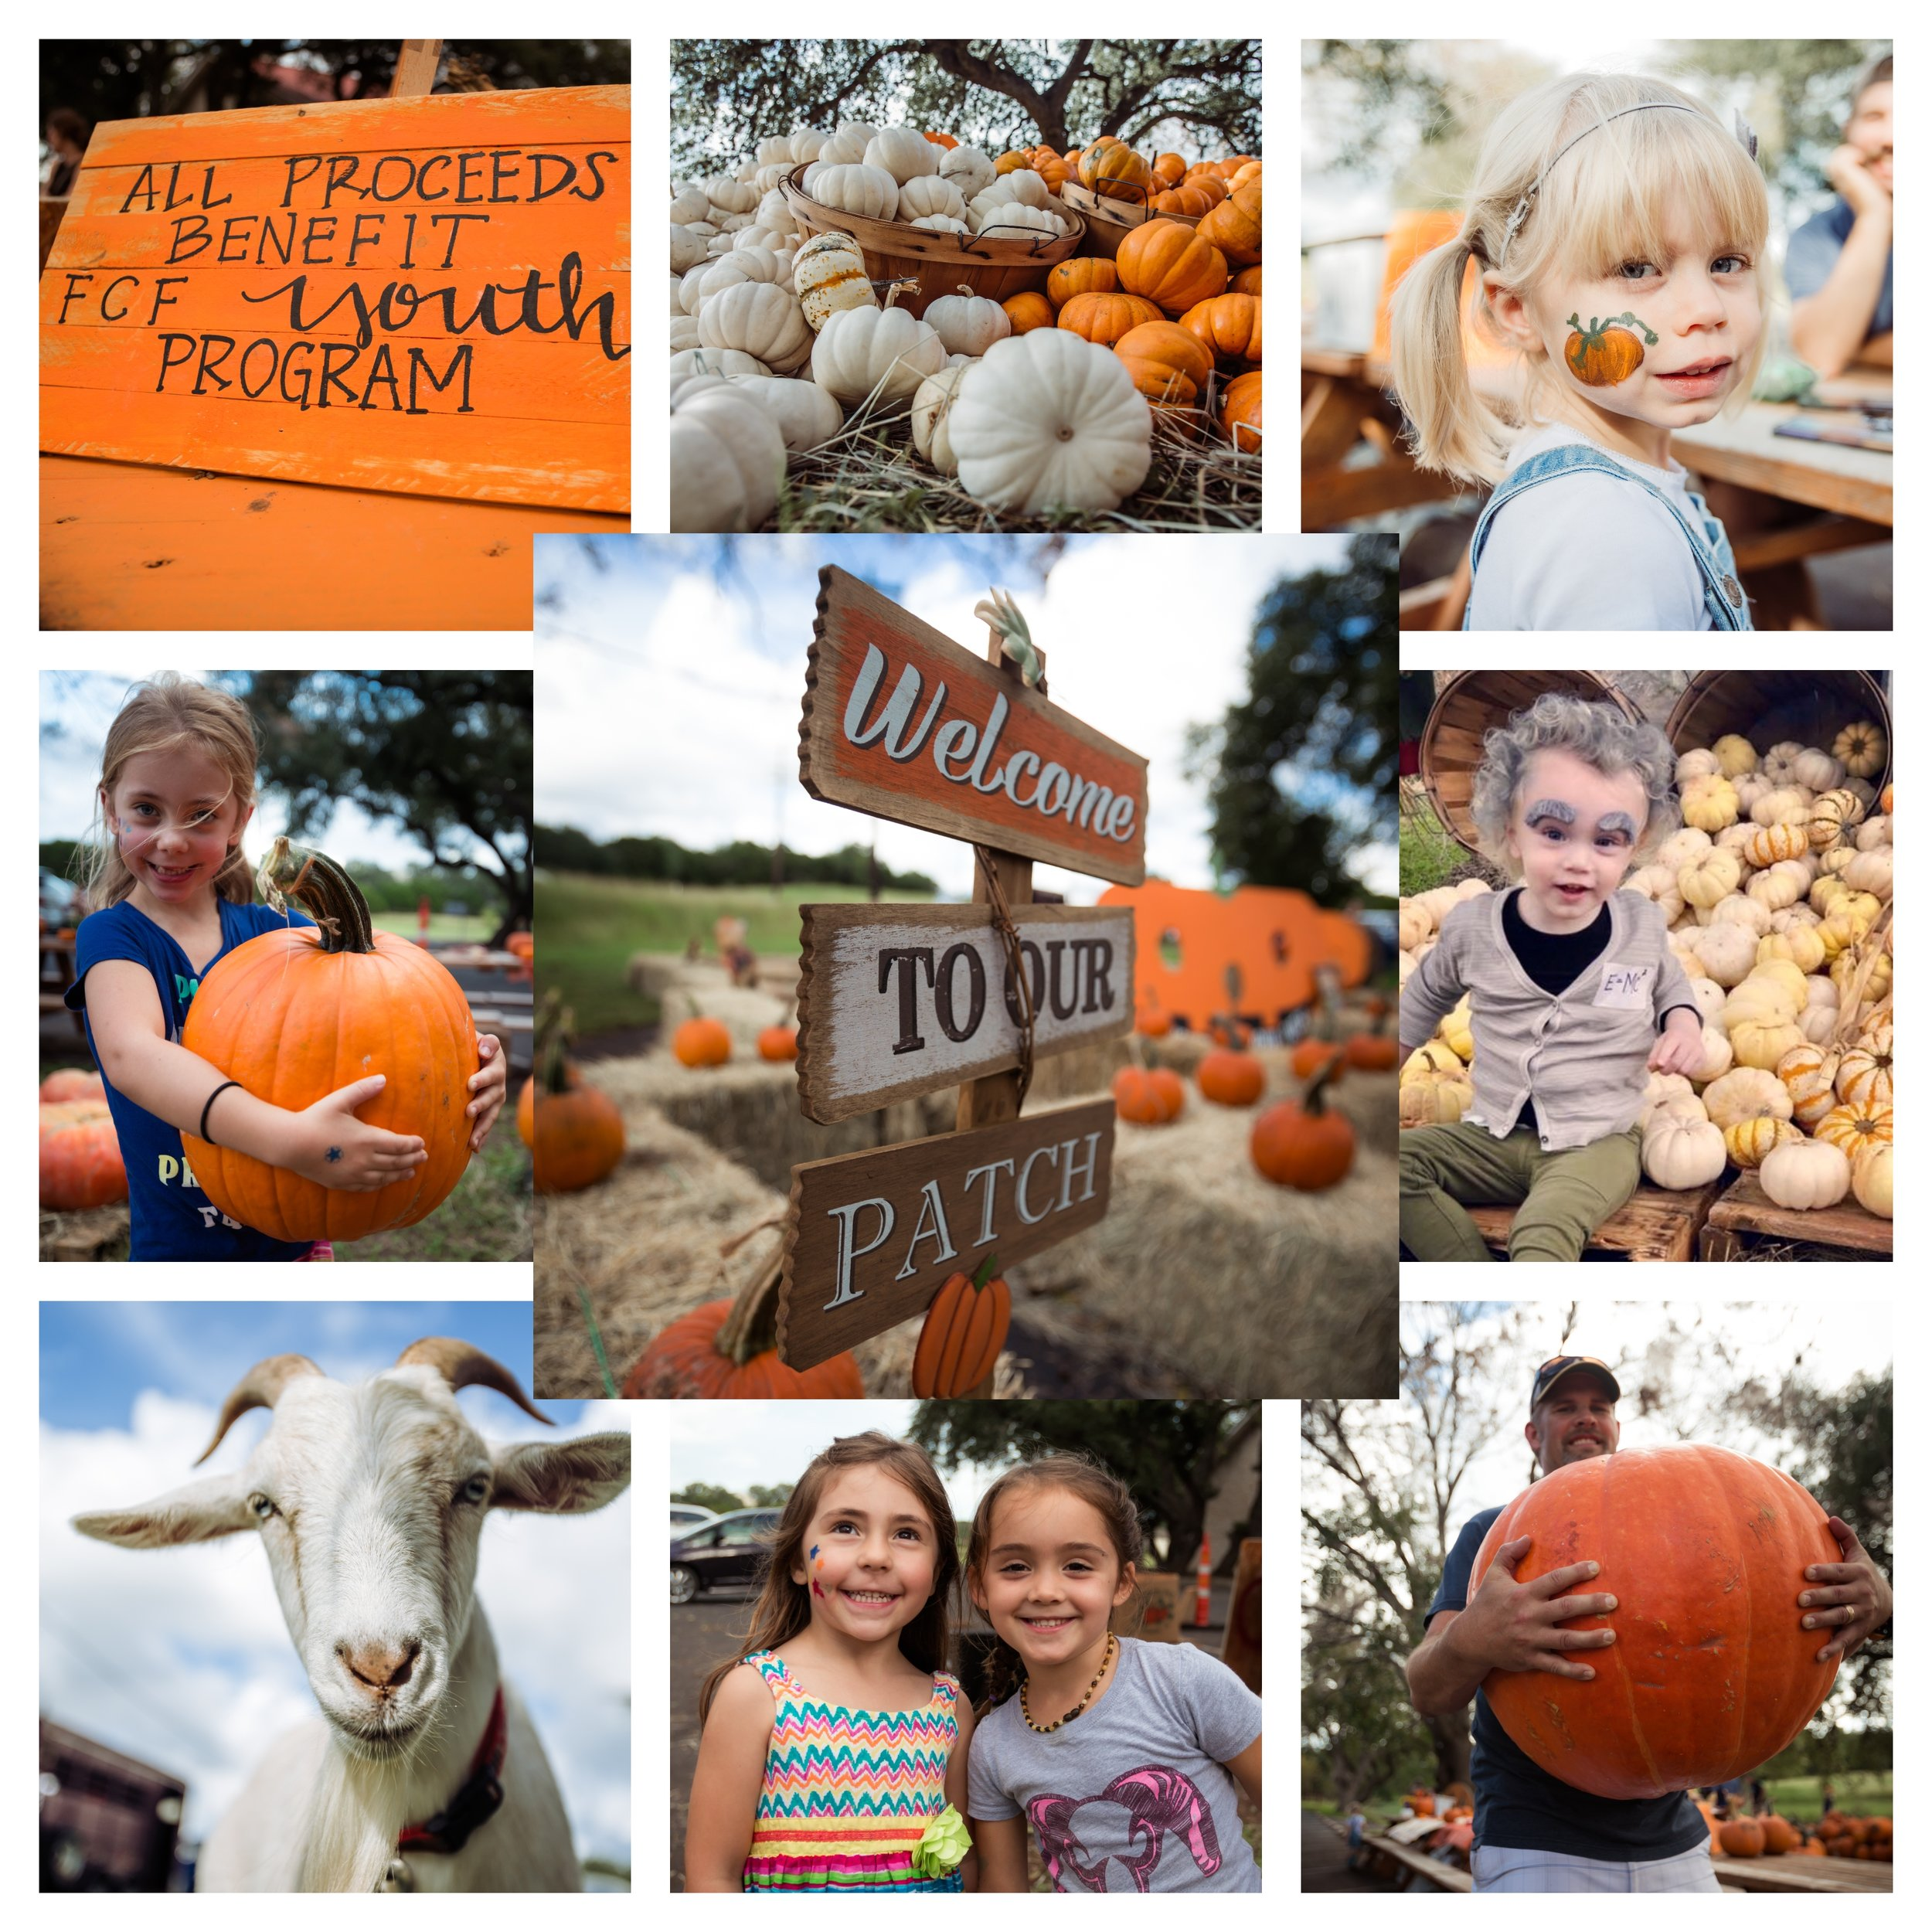 2018 In Pictures Pumpkin Patch.jpg